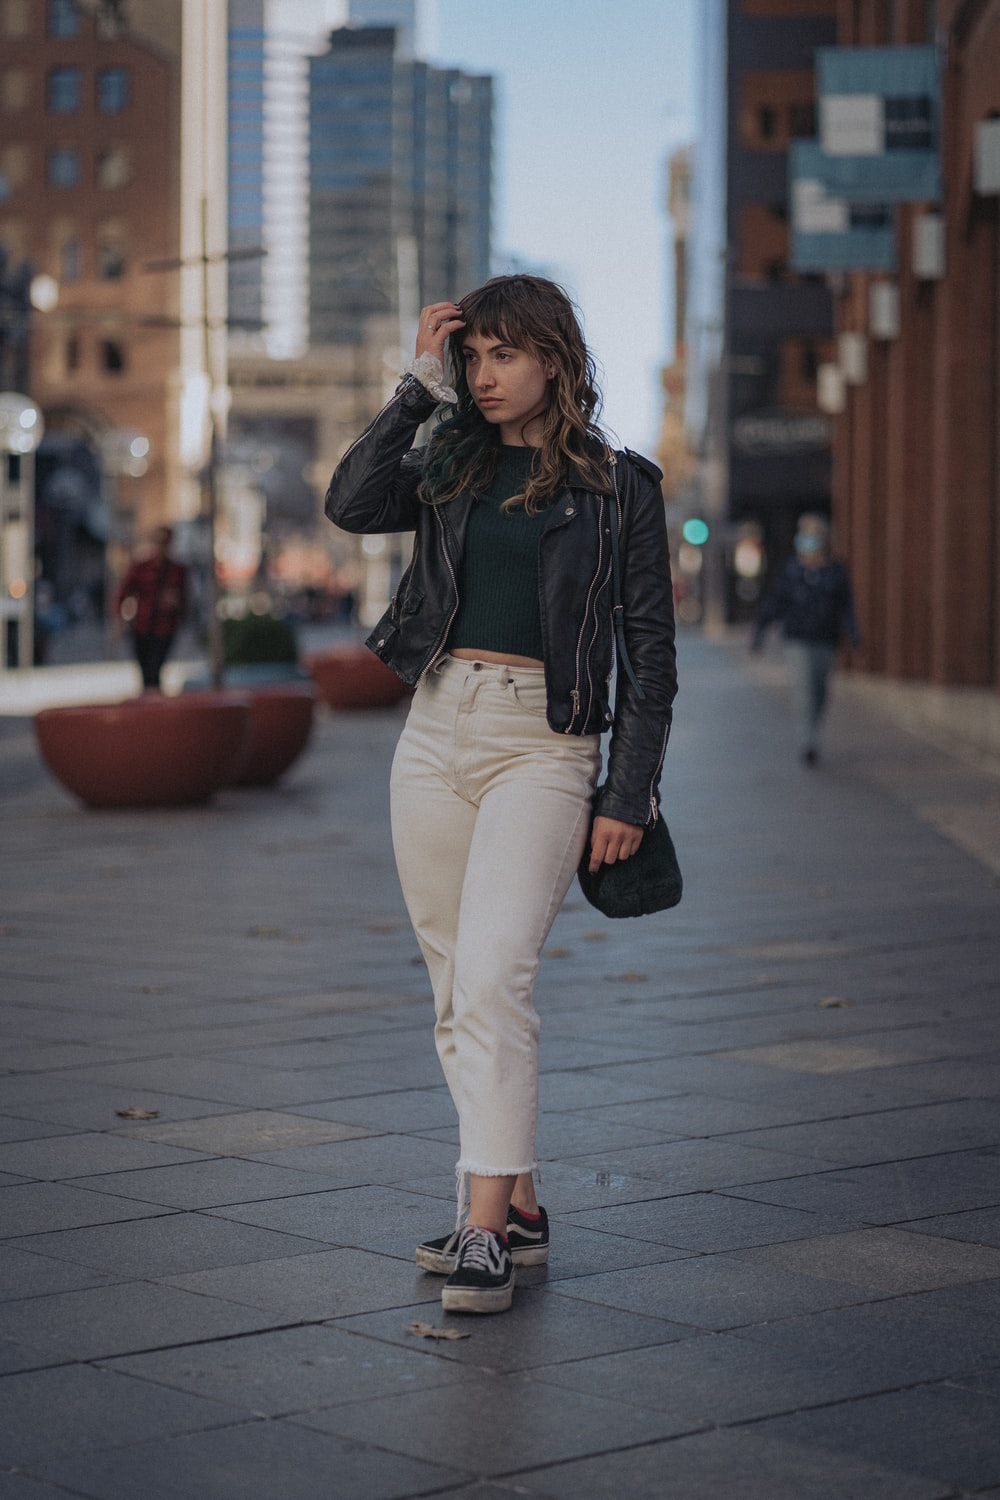 woman in black leather jacket and white pants standing on sidewalk during daytime